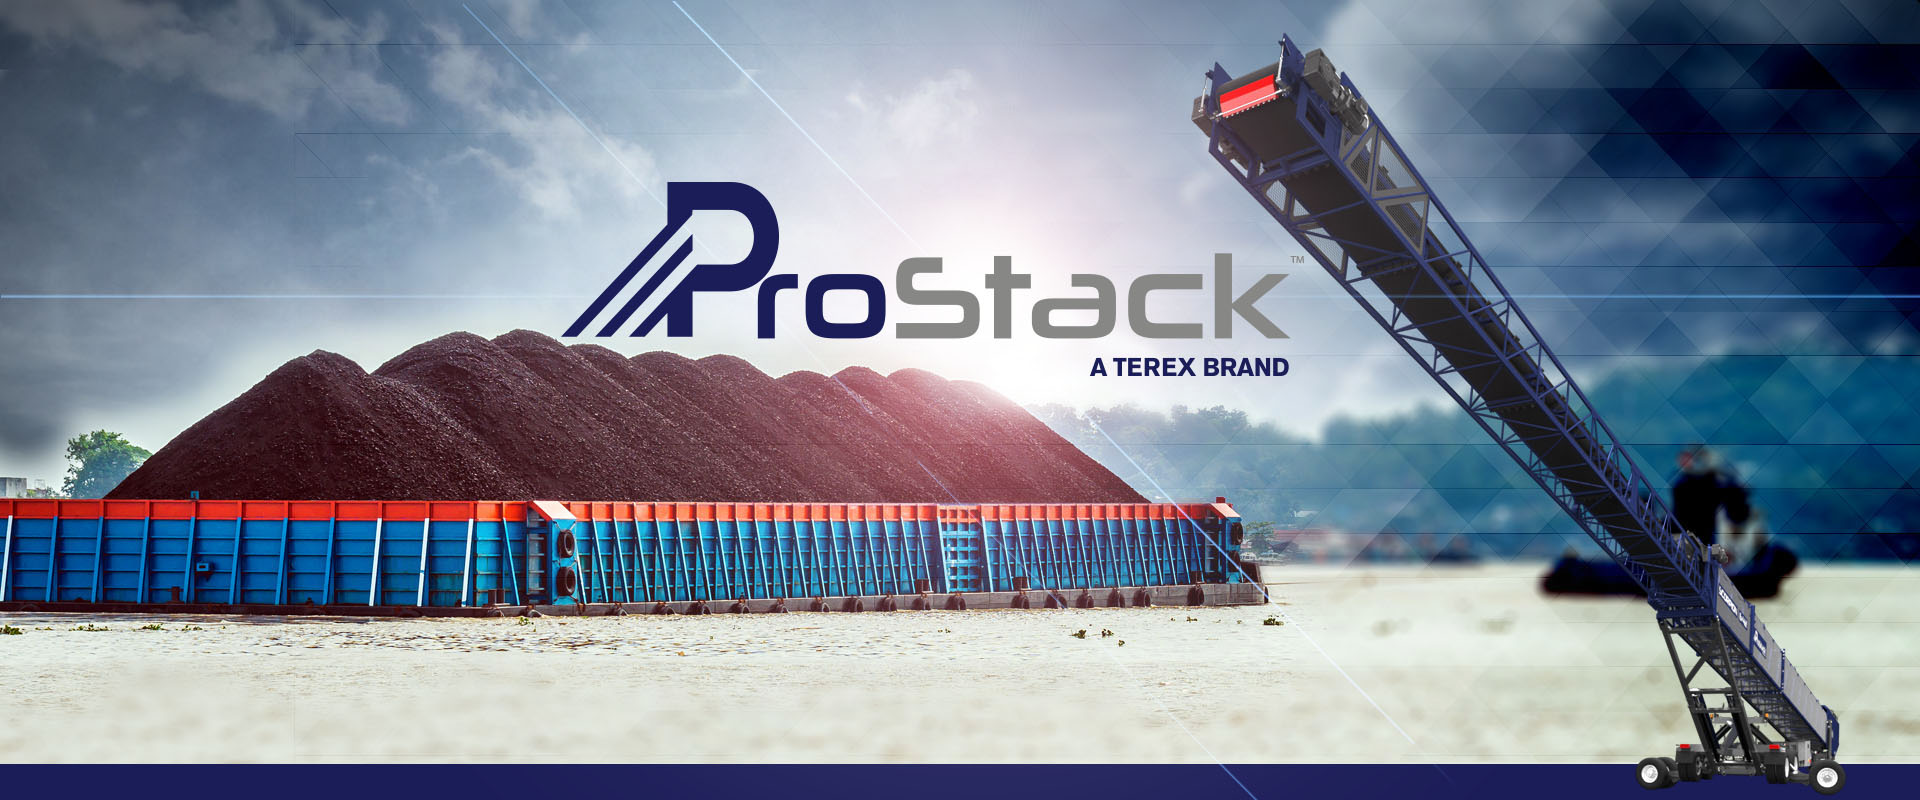 Prostack Conveyor Hero Image